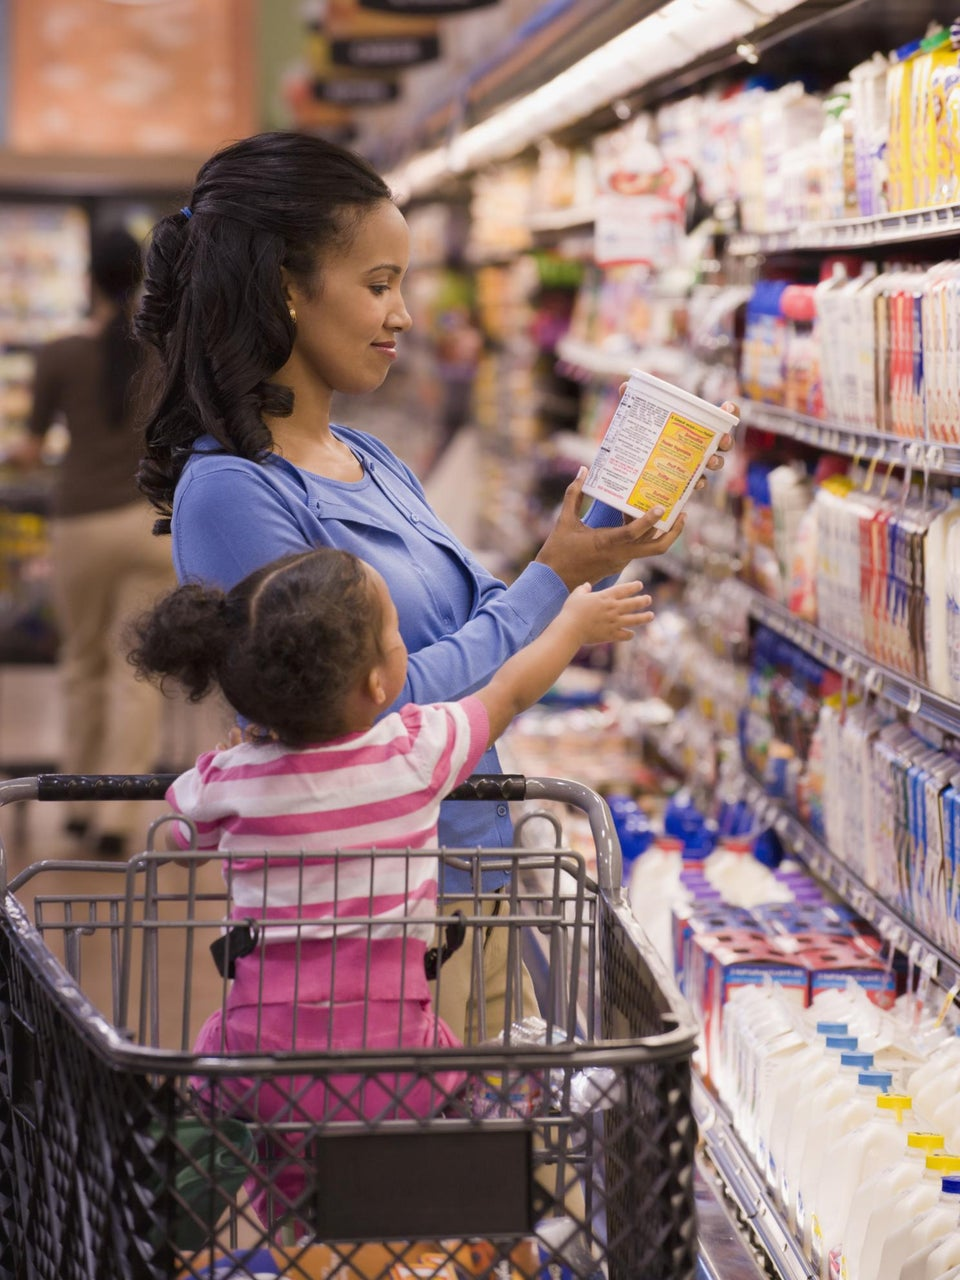 ESSENCE Poll: Should the Government Regulate Which Foods You Can Buy With Food Stamps?